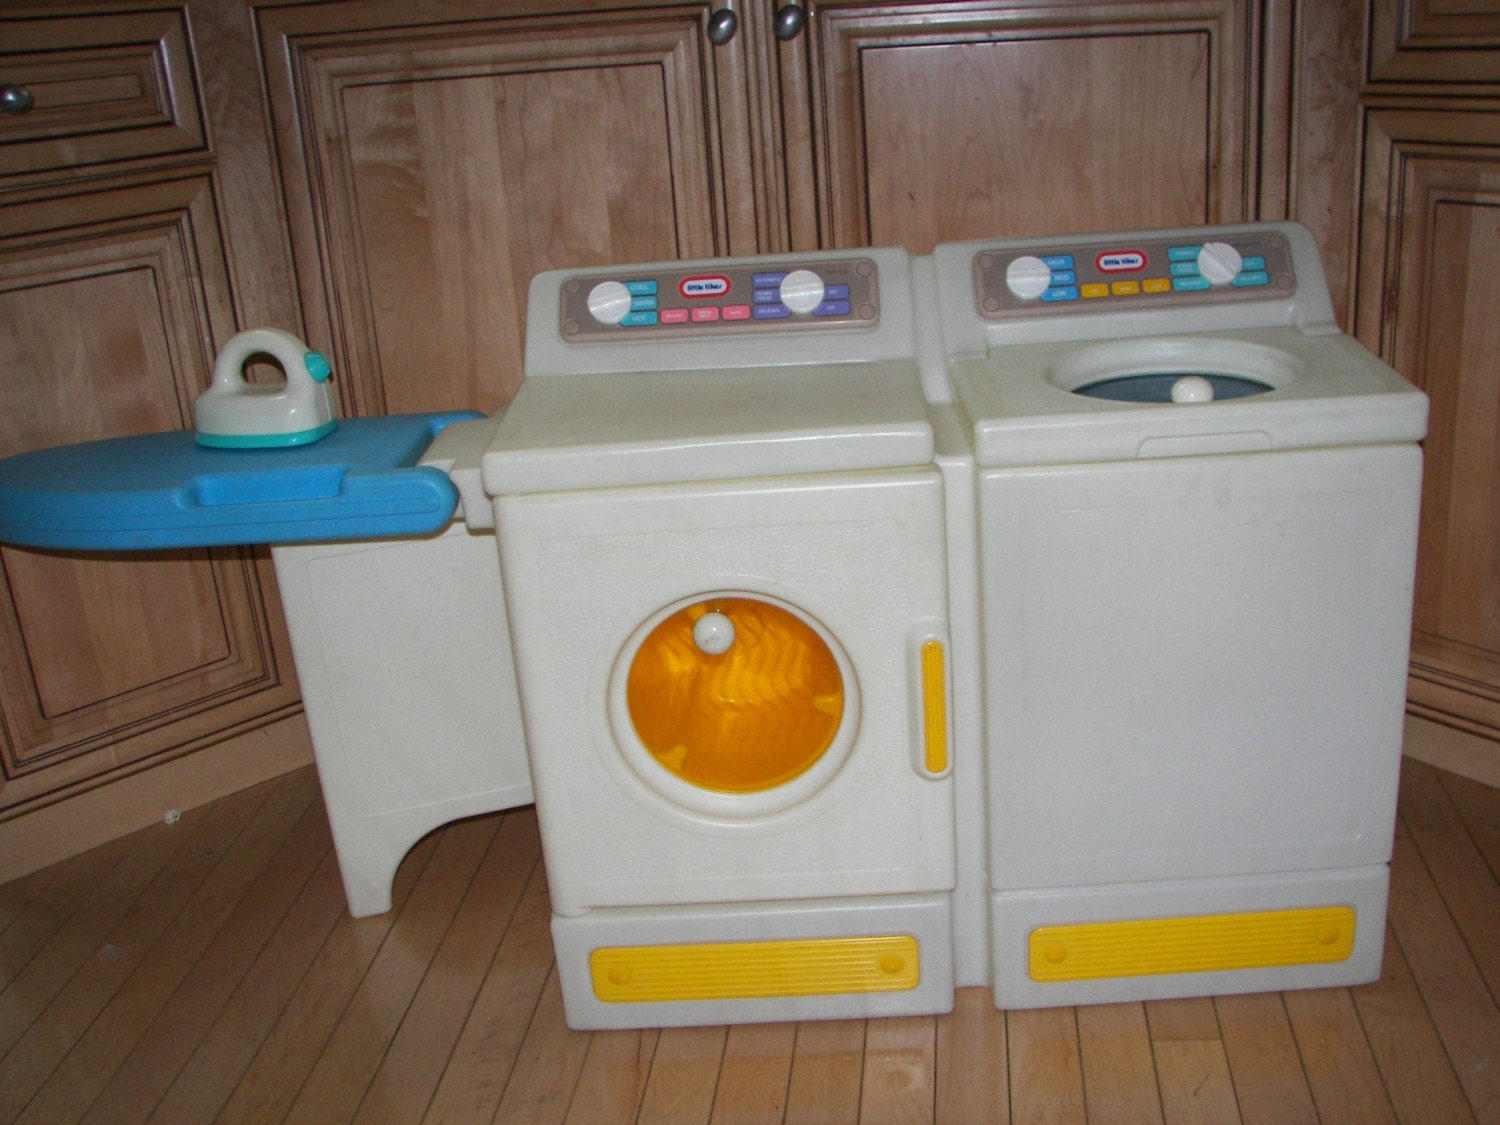 Little Tikes Washer Dryer Laundry Center With Ironing Board